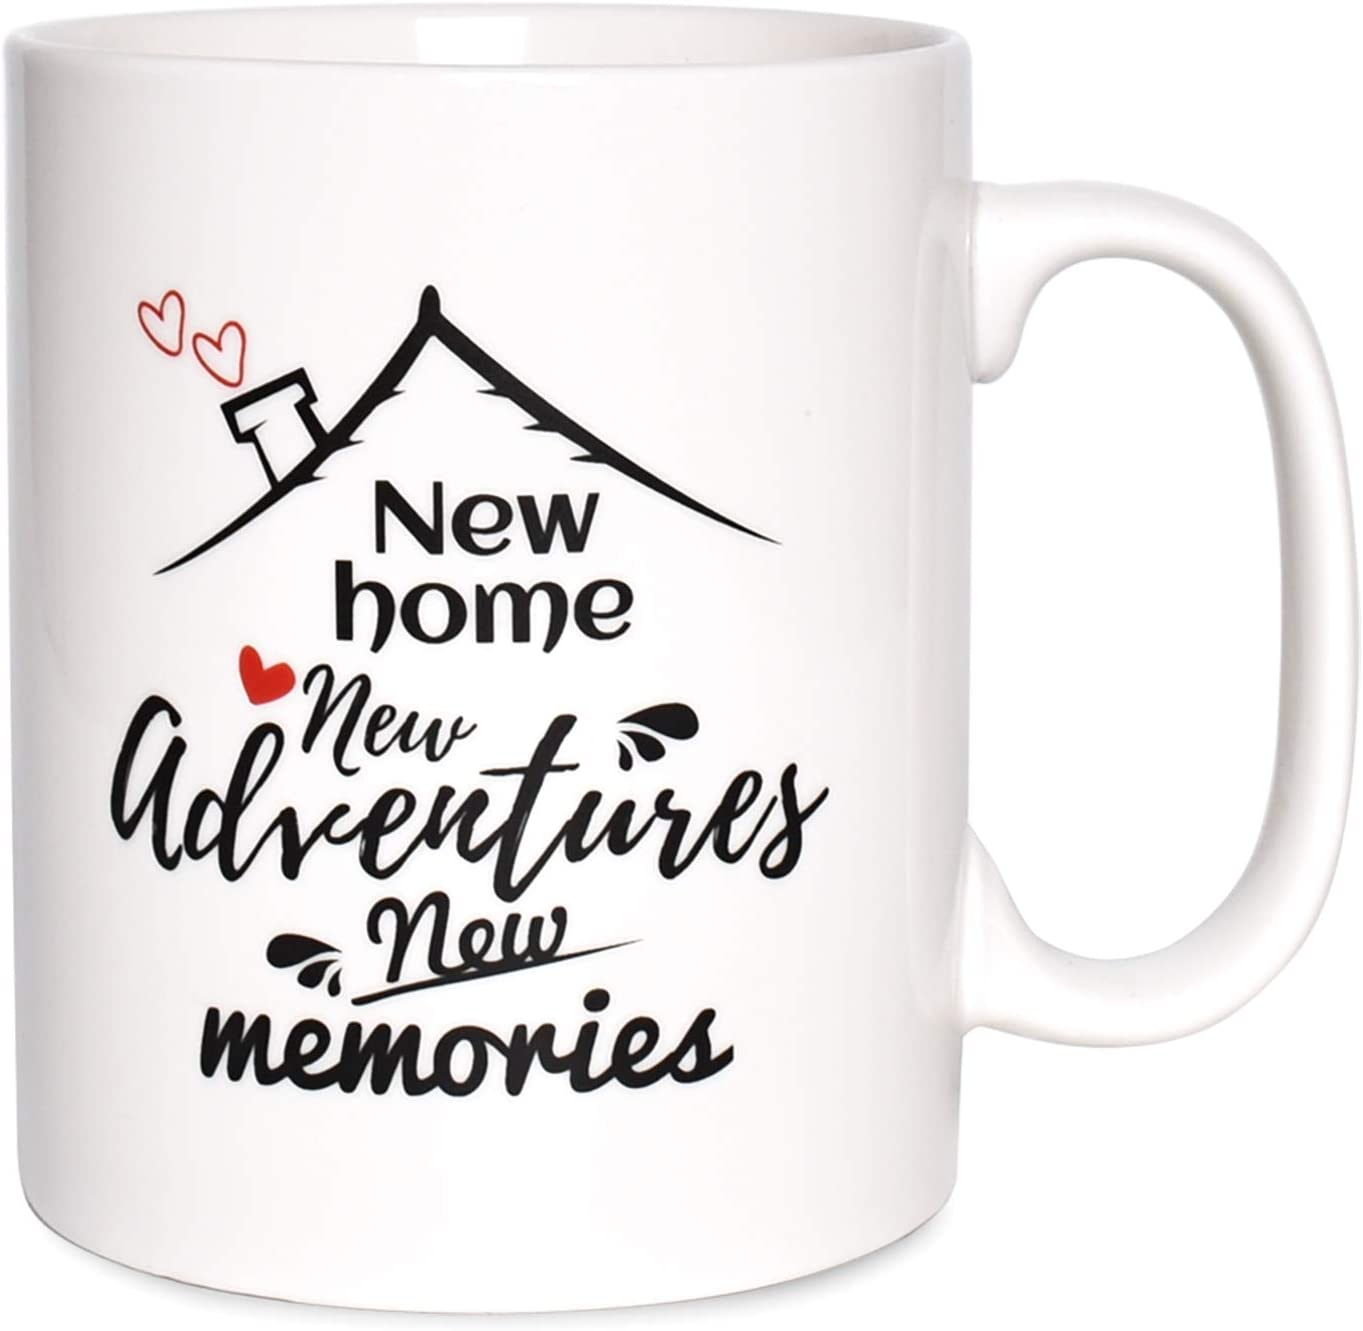 Bosmarlin Housewarming Gift Ideas, New Home Ceramic Mug for Couple, Friends, Men, Women, 17.5 Oz, Dishwasher and Microwave Safe